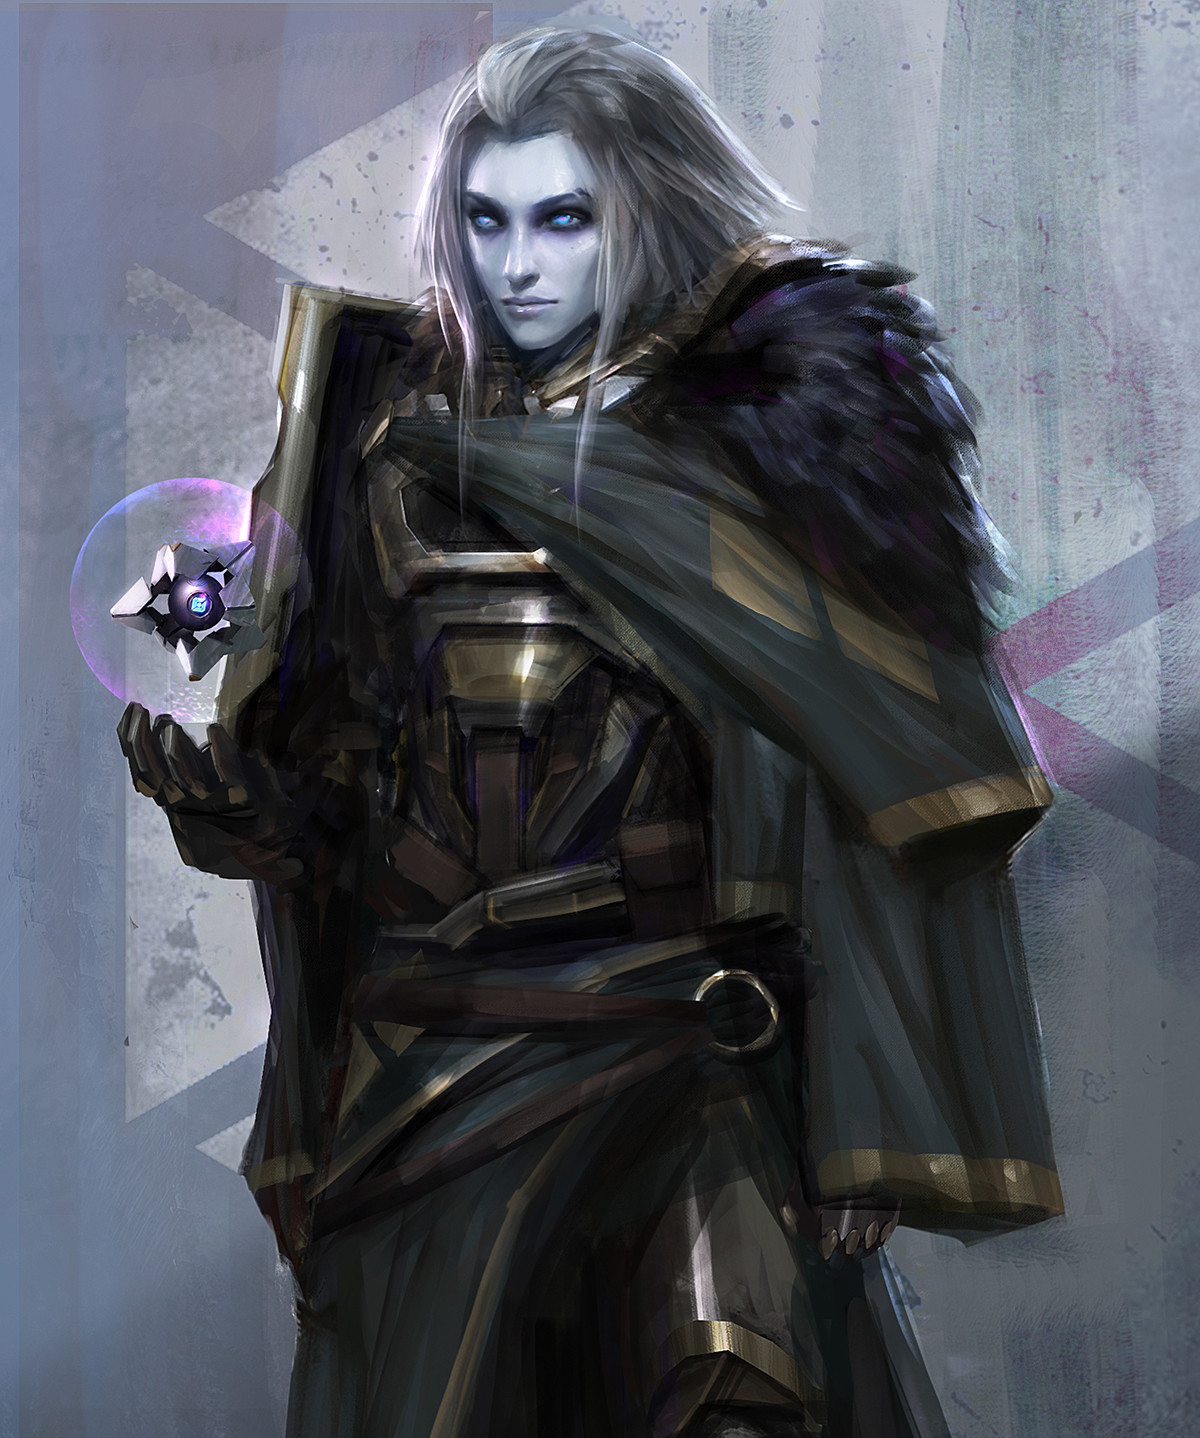 Destiny Fanart - Mara Sov, Queen of Titans